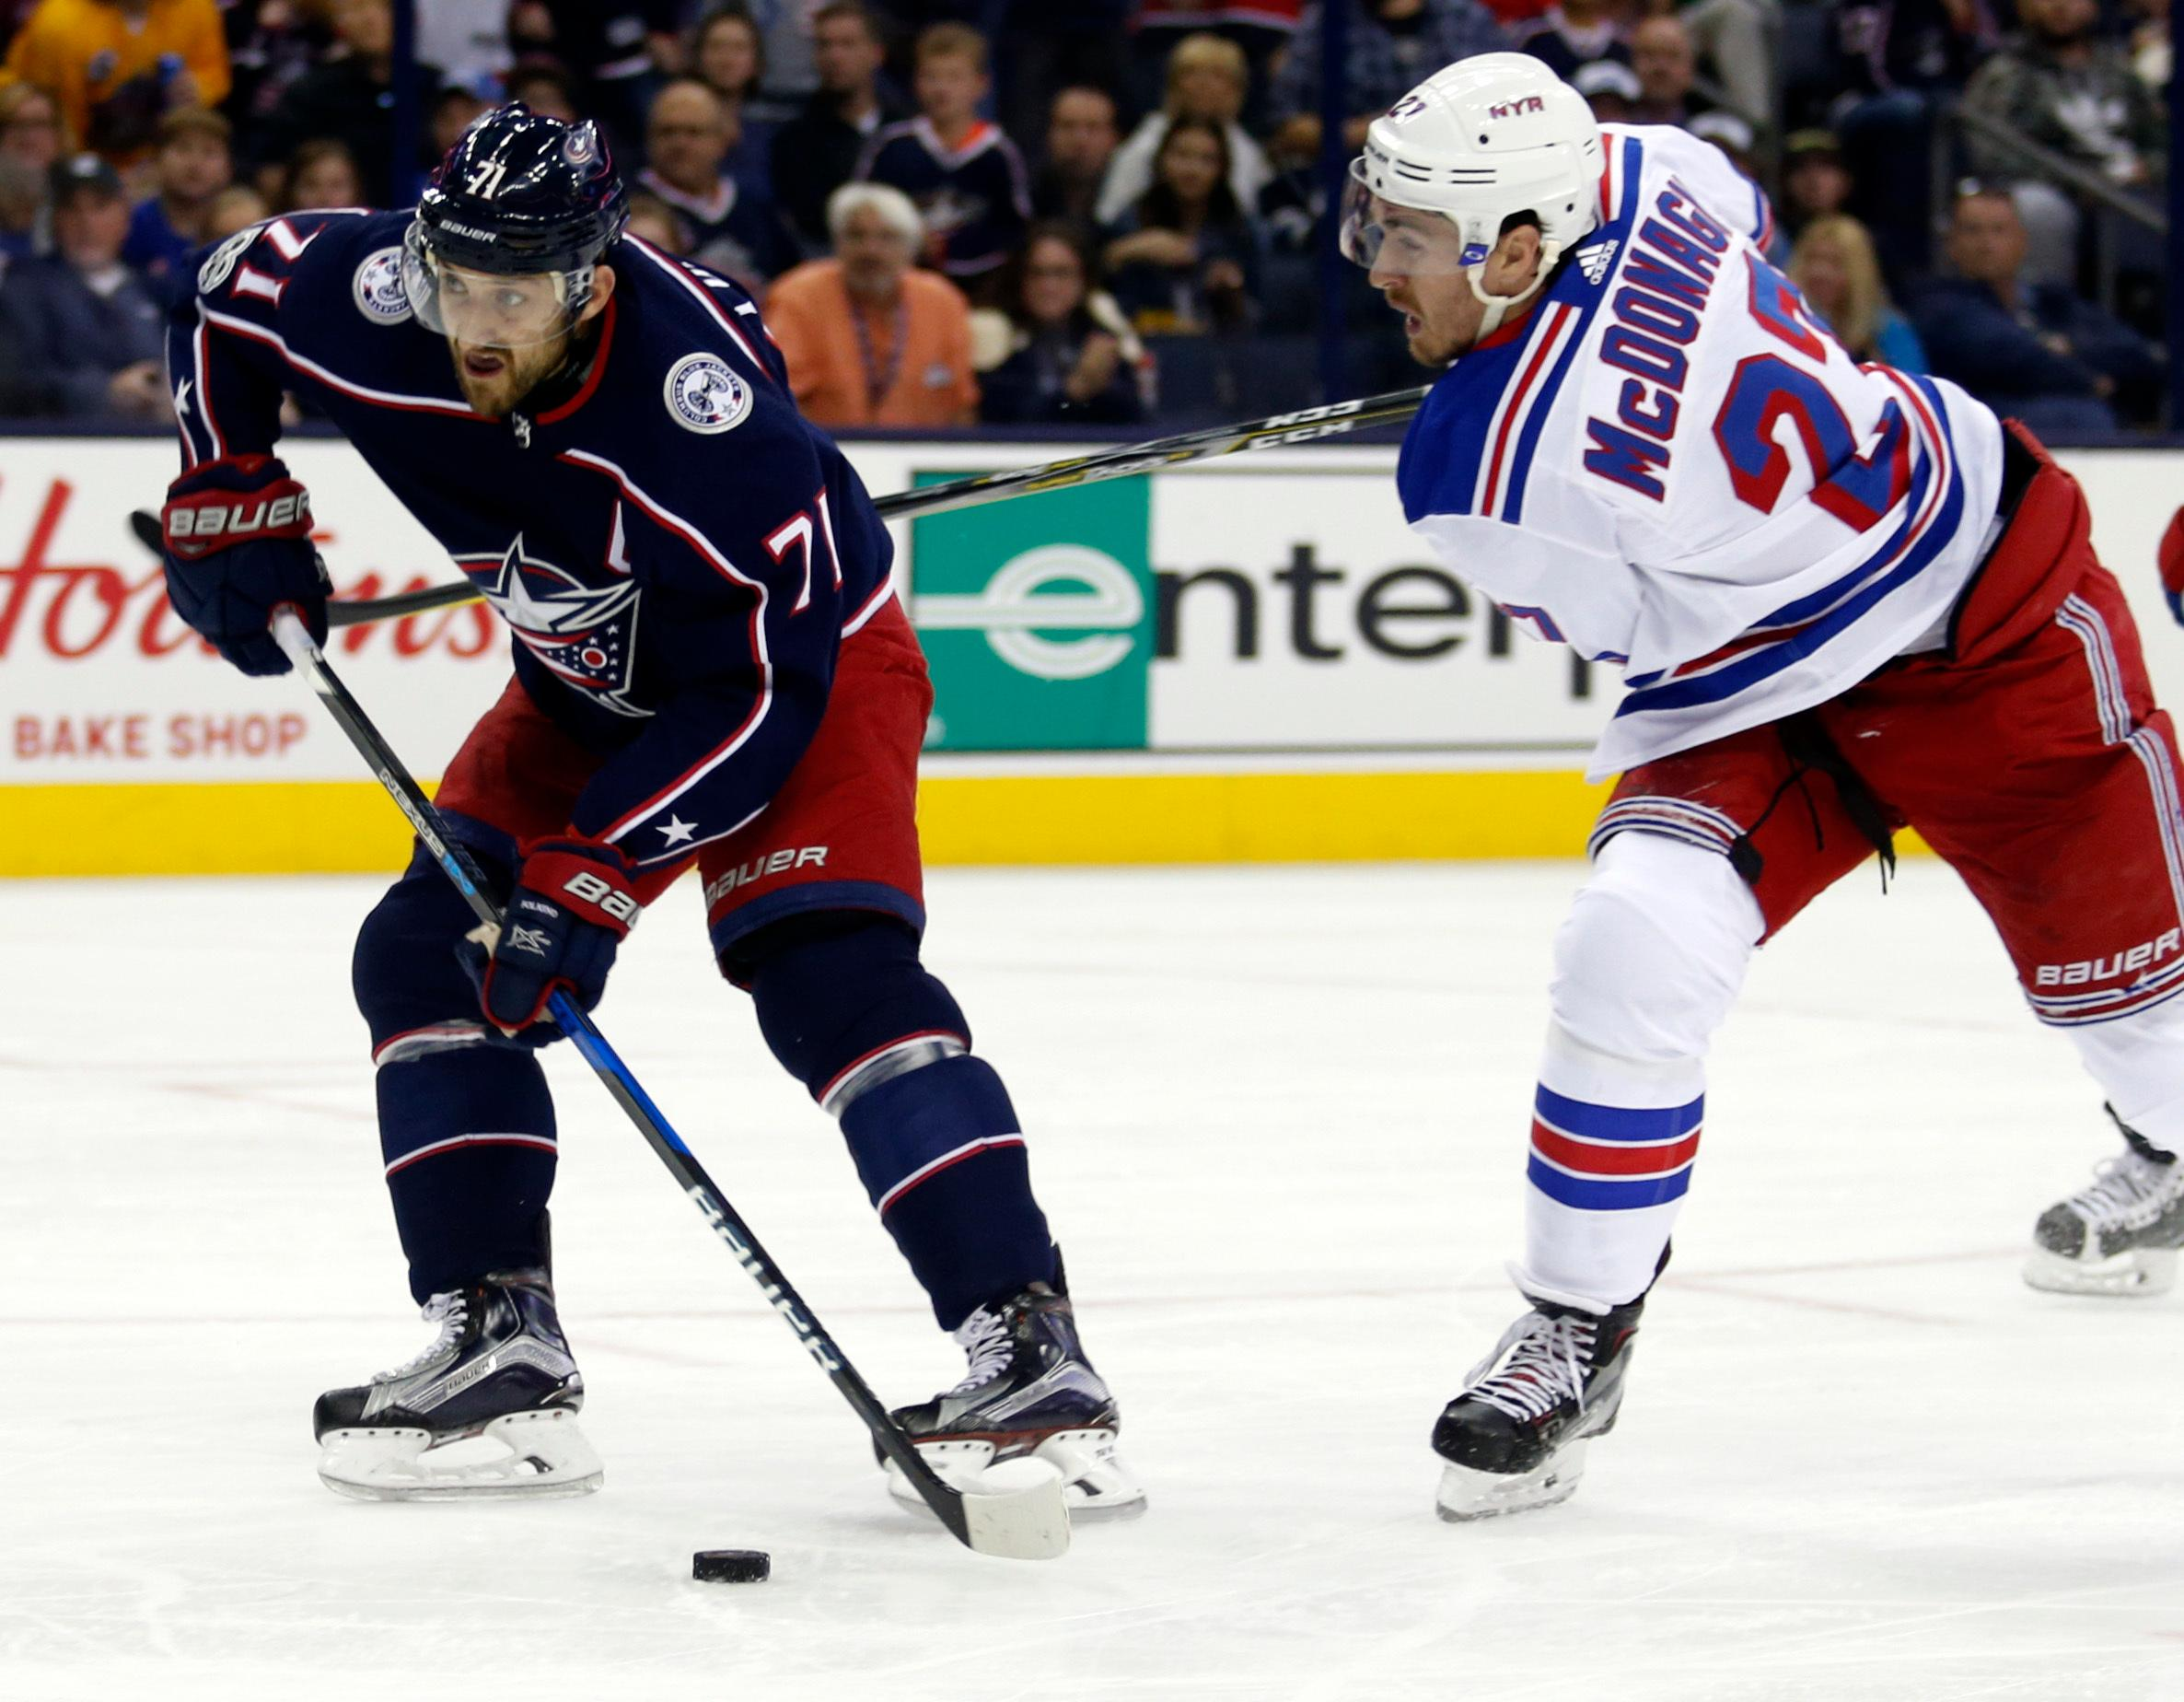 Columbus Blue Jackets forward Nick Foligno, left, tries to shoot the puck against New York Rangers defenseman Ryan McDonagh during the second period of an NHL hockey game in Columbus, Ohio, Friday, Oct. 13, 2017. McDonagh was called for slashing on the play.(AP Photo/Paul Vernon)